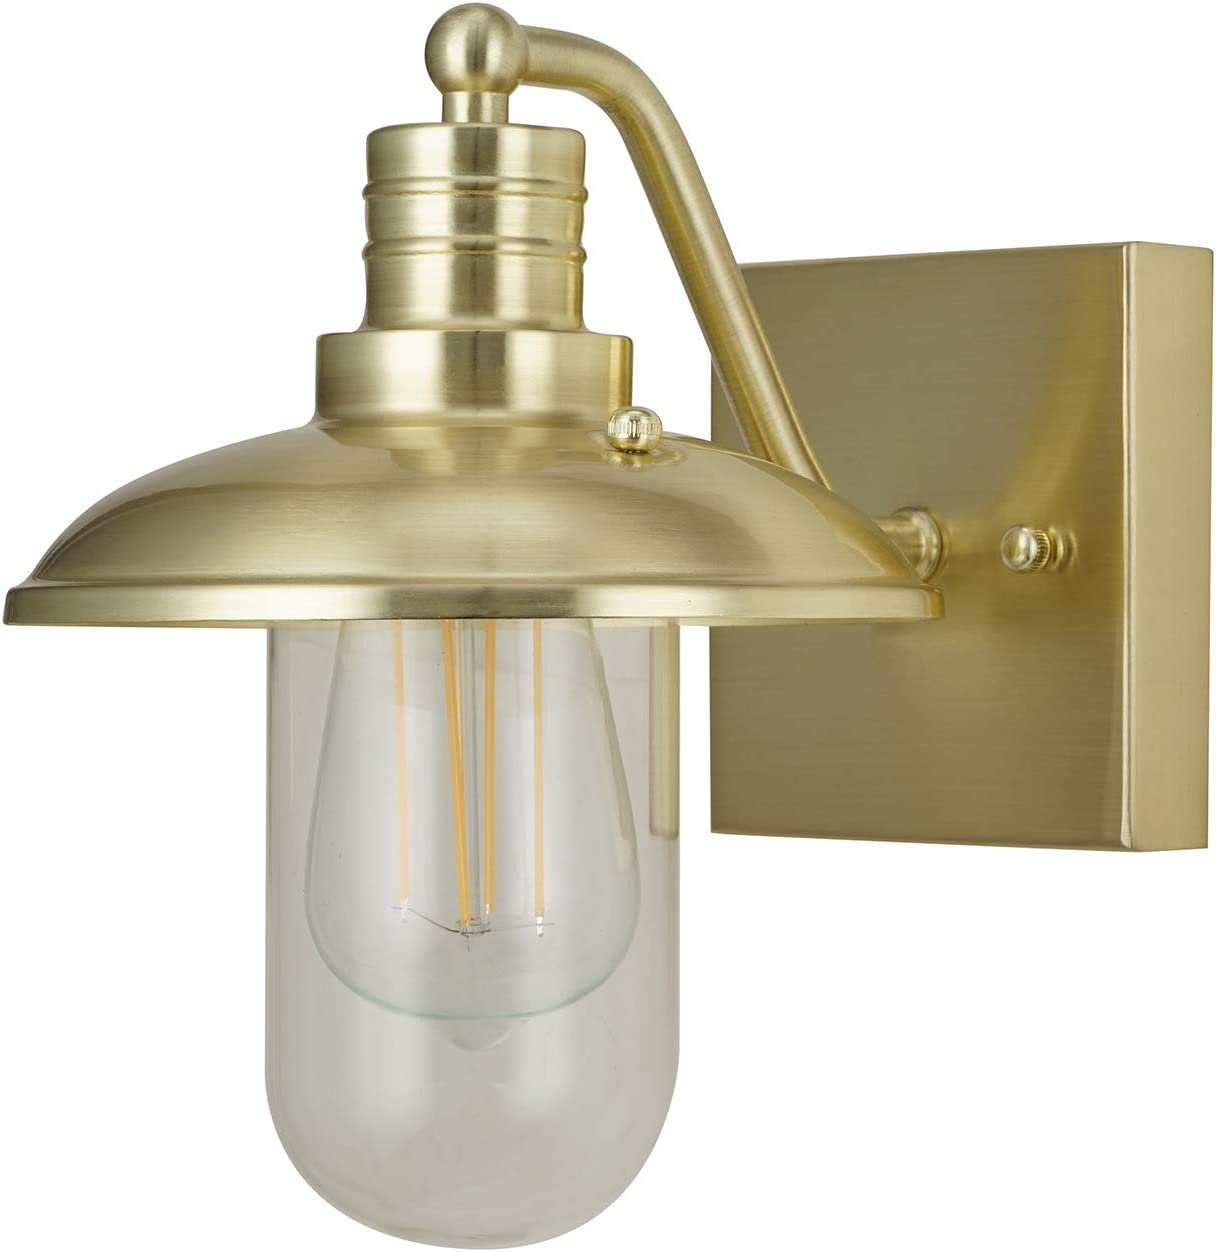 Amazon Brand – Stone & Beam Industrial Wall Sconce Light with Clear Glass Shade, 9.5